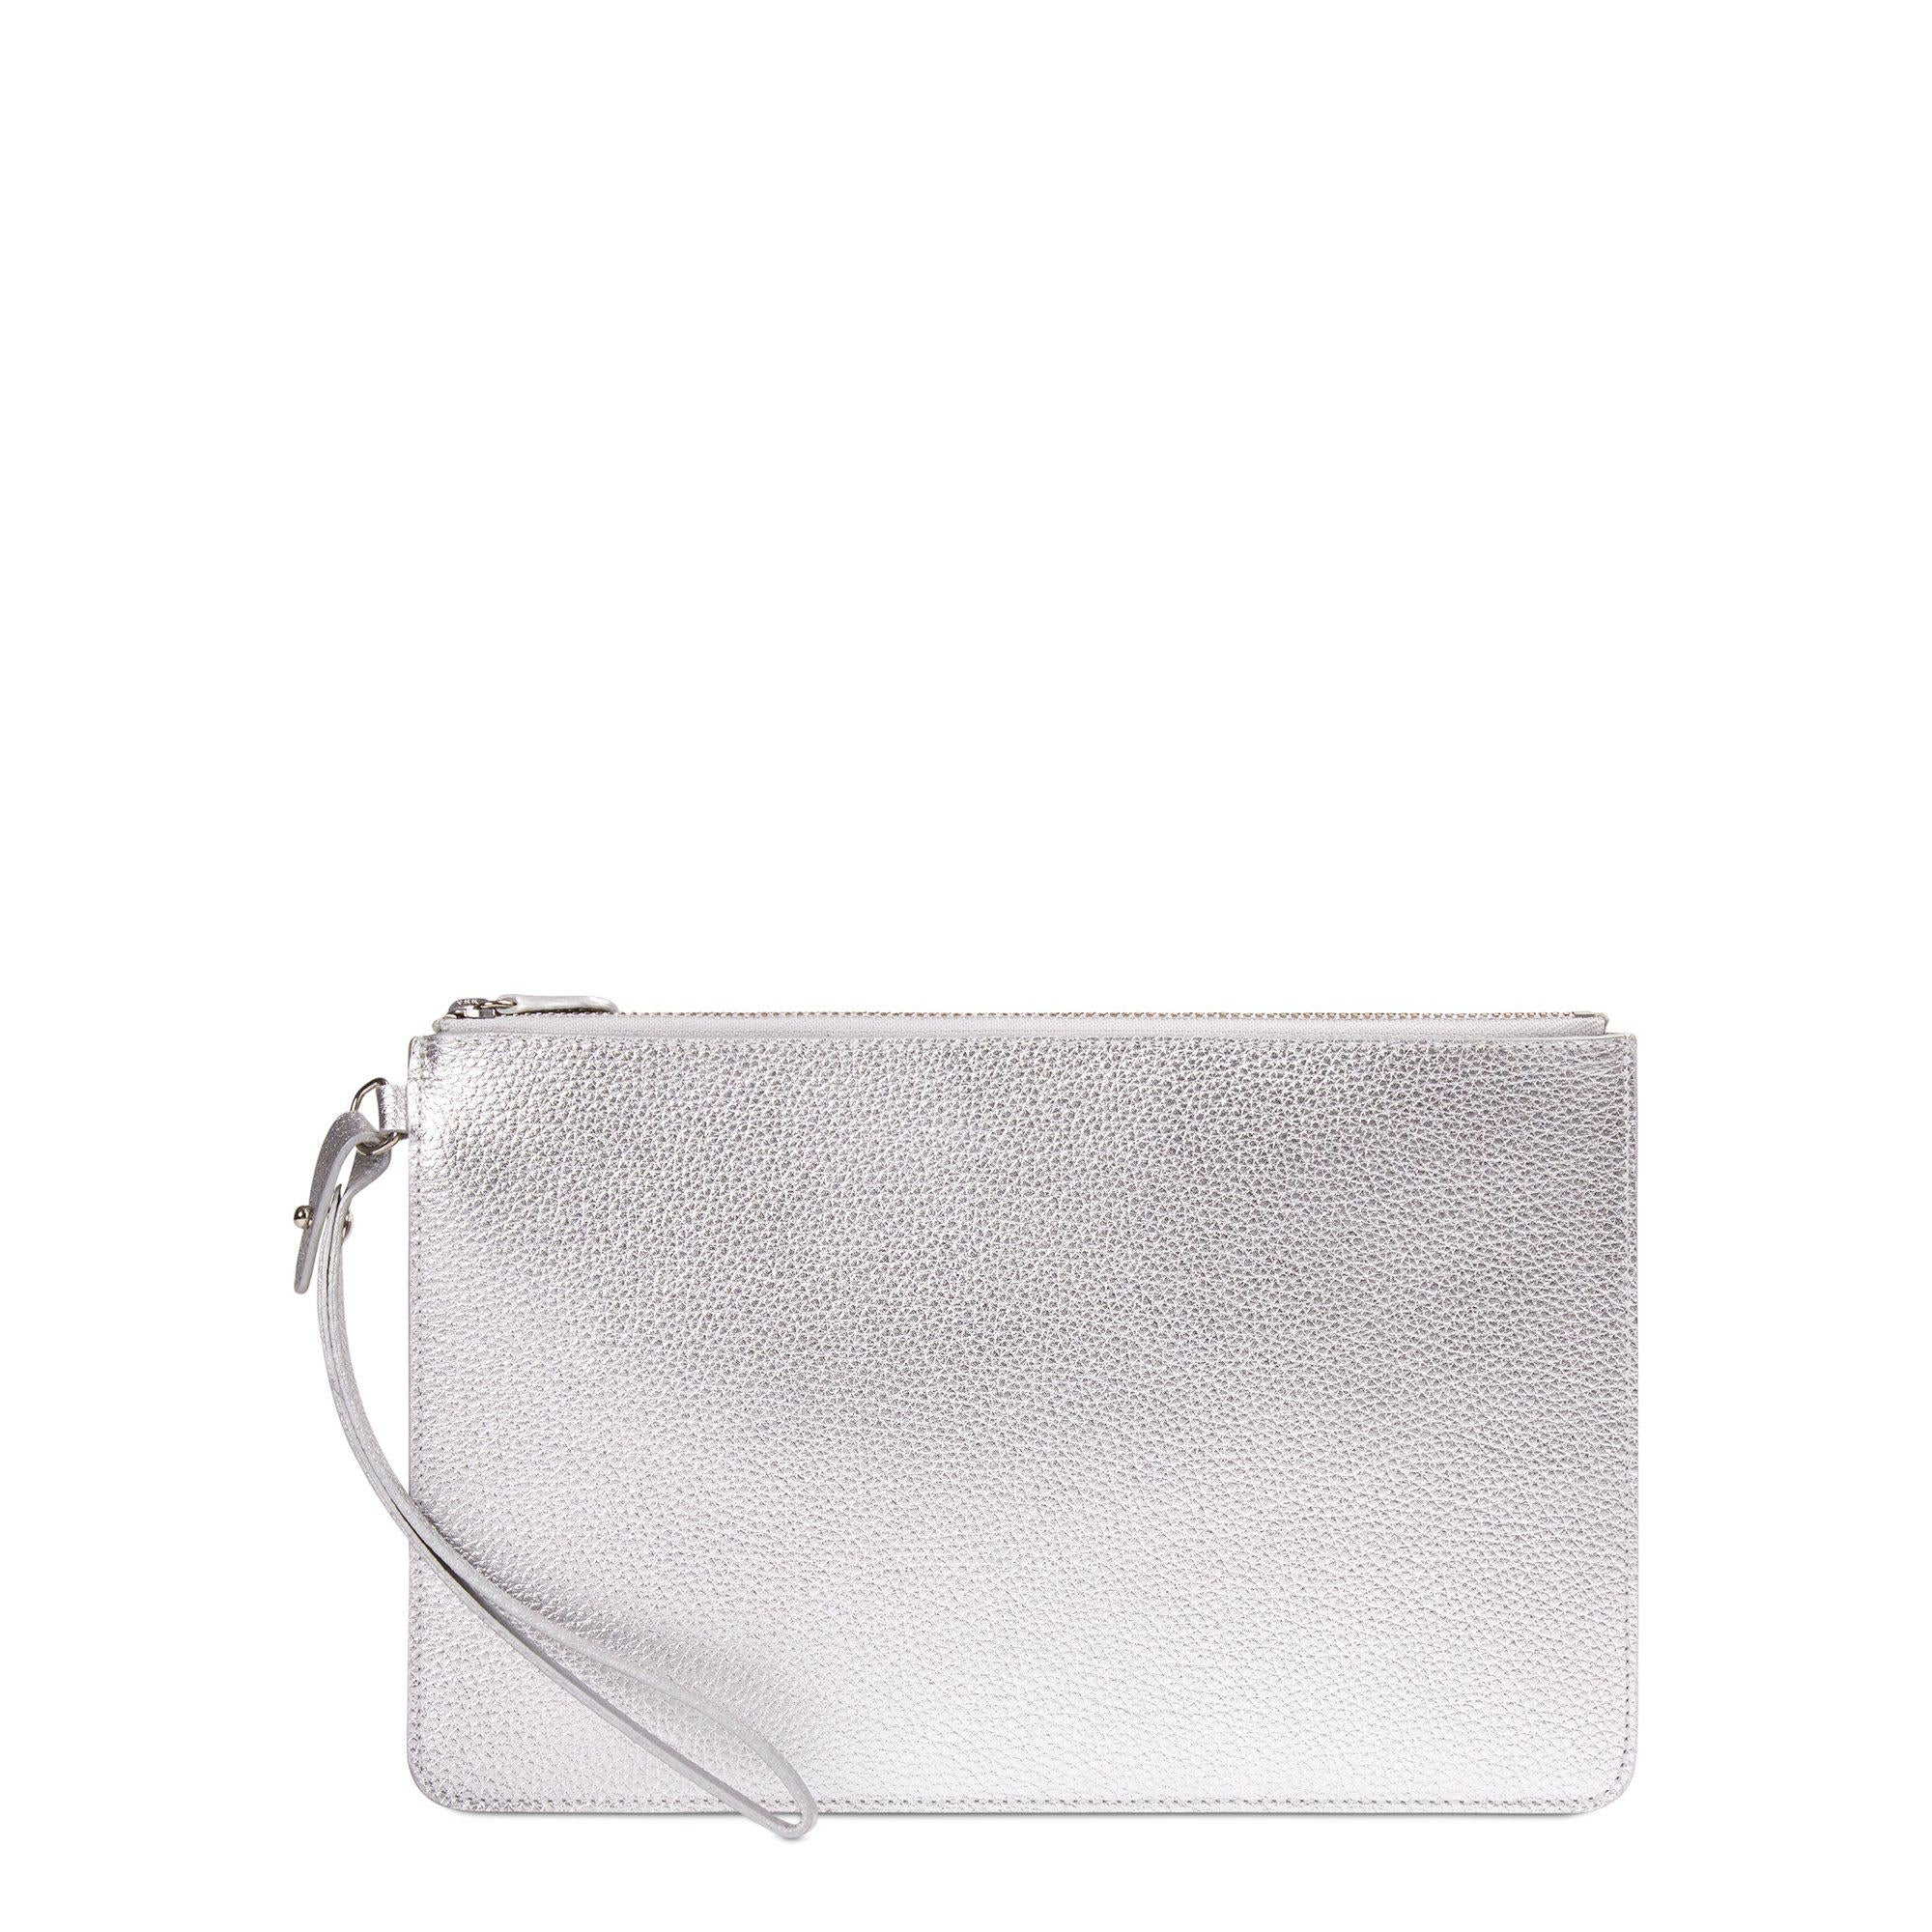 Clutch in Grain Leather - Silver Grain